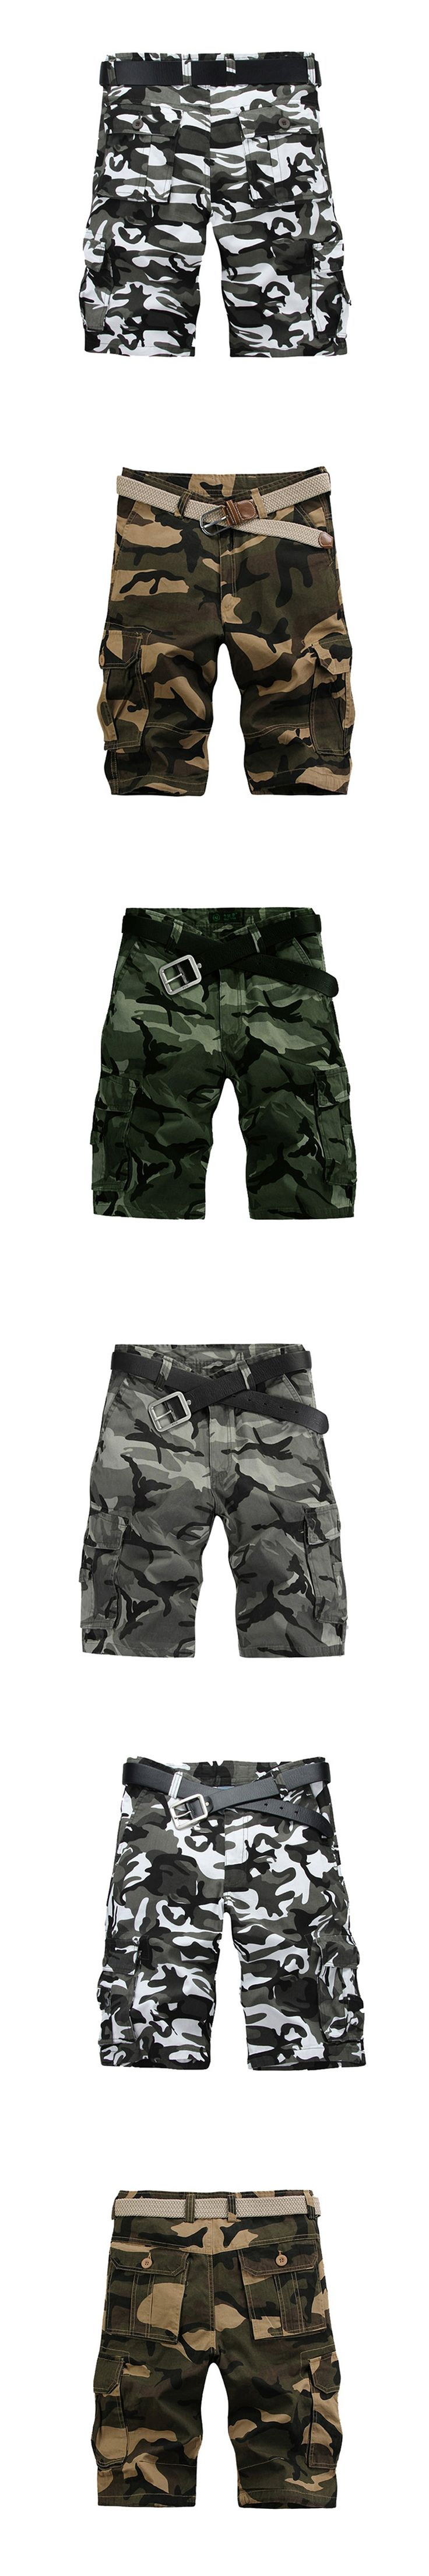 Men's Military Shorts Summer 2017 Men Camouflage Army Cargo Short Multi Pocket Casual Camouflage Summer Brand Clothing Male